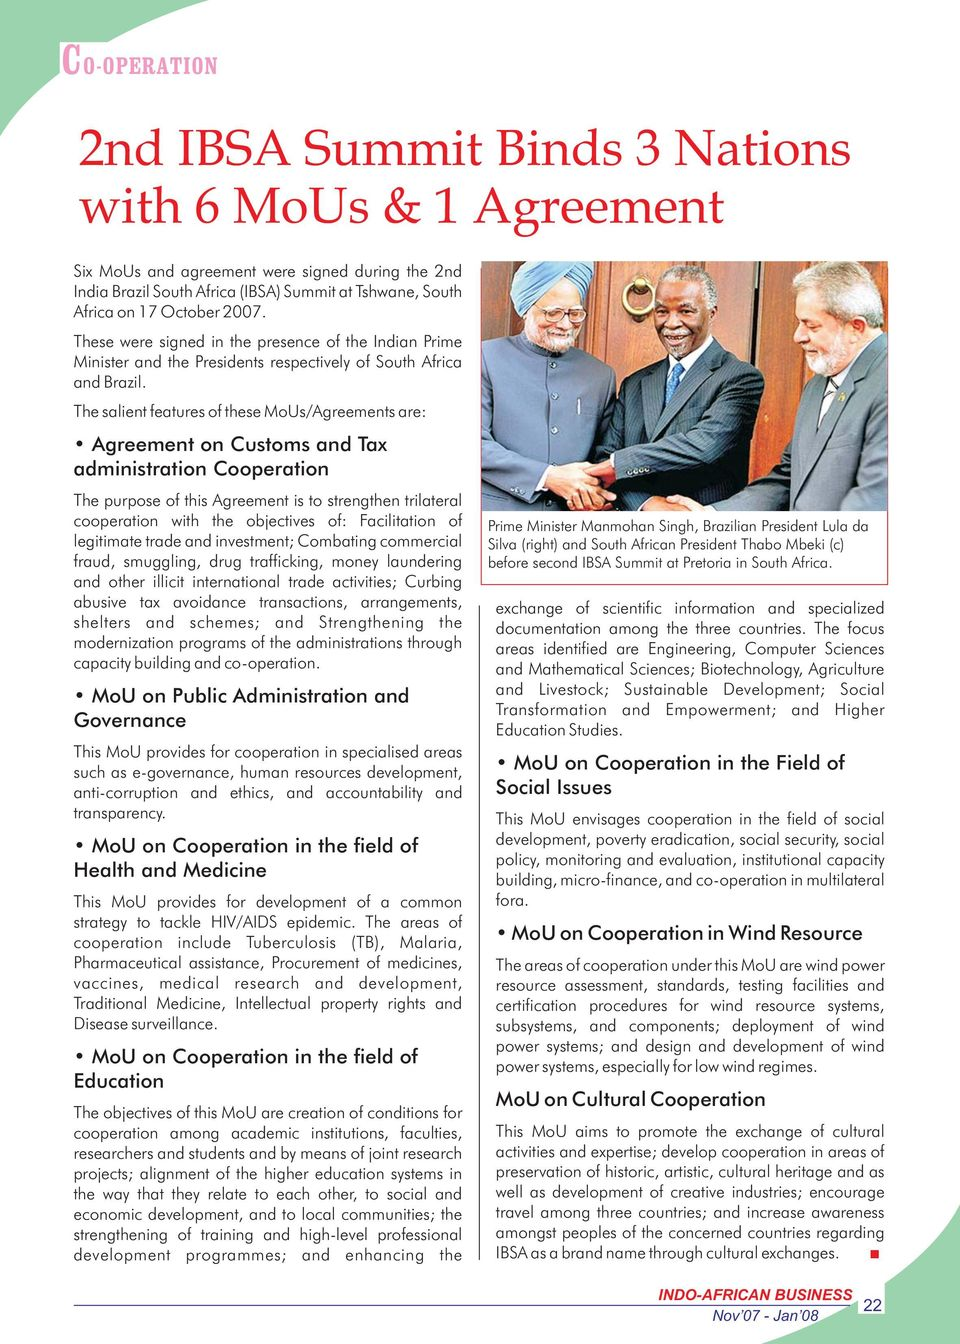 The salient features of these MoUs/Agreements are: Agreement on Customs and Tax administration Cooperation The purpose of this Agreement is to strengthen trilateral cooperation with the objectives